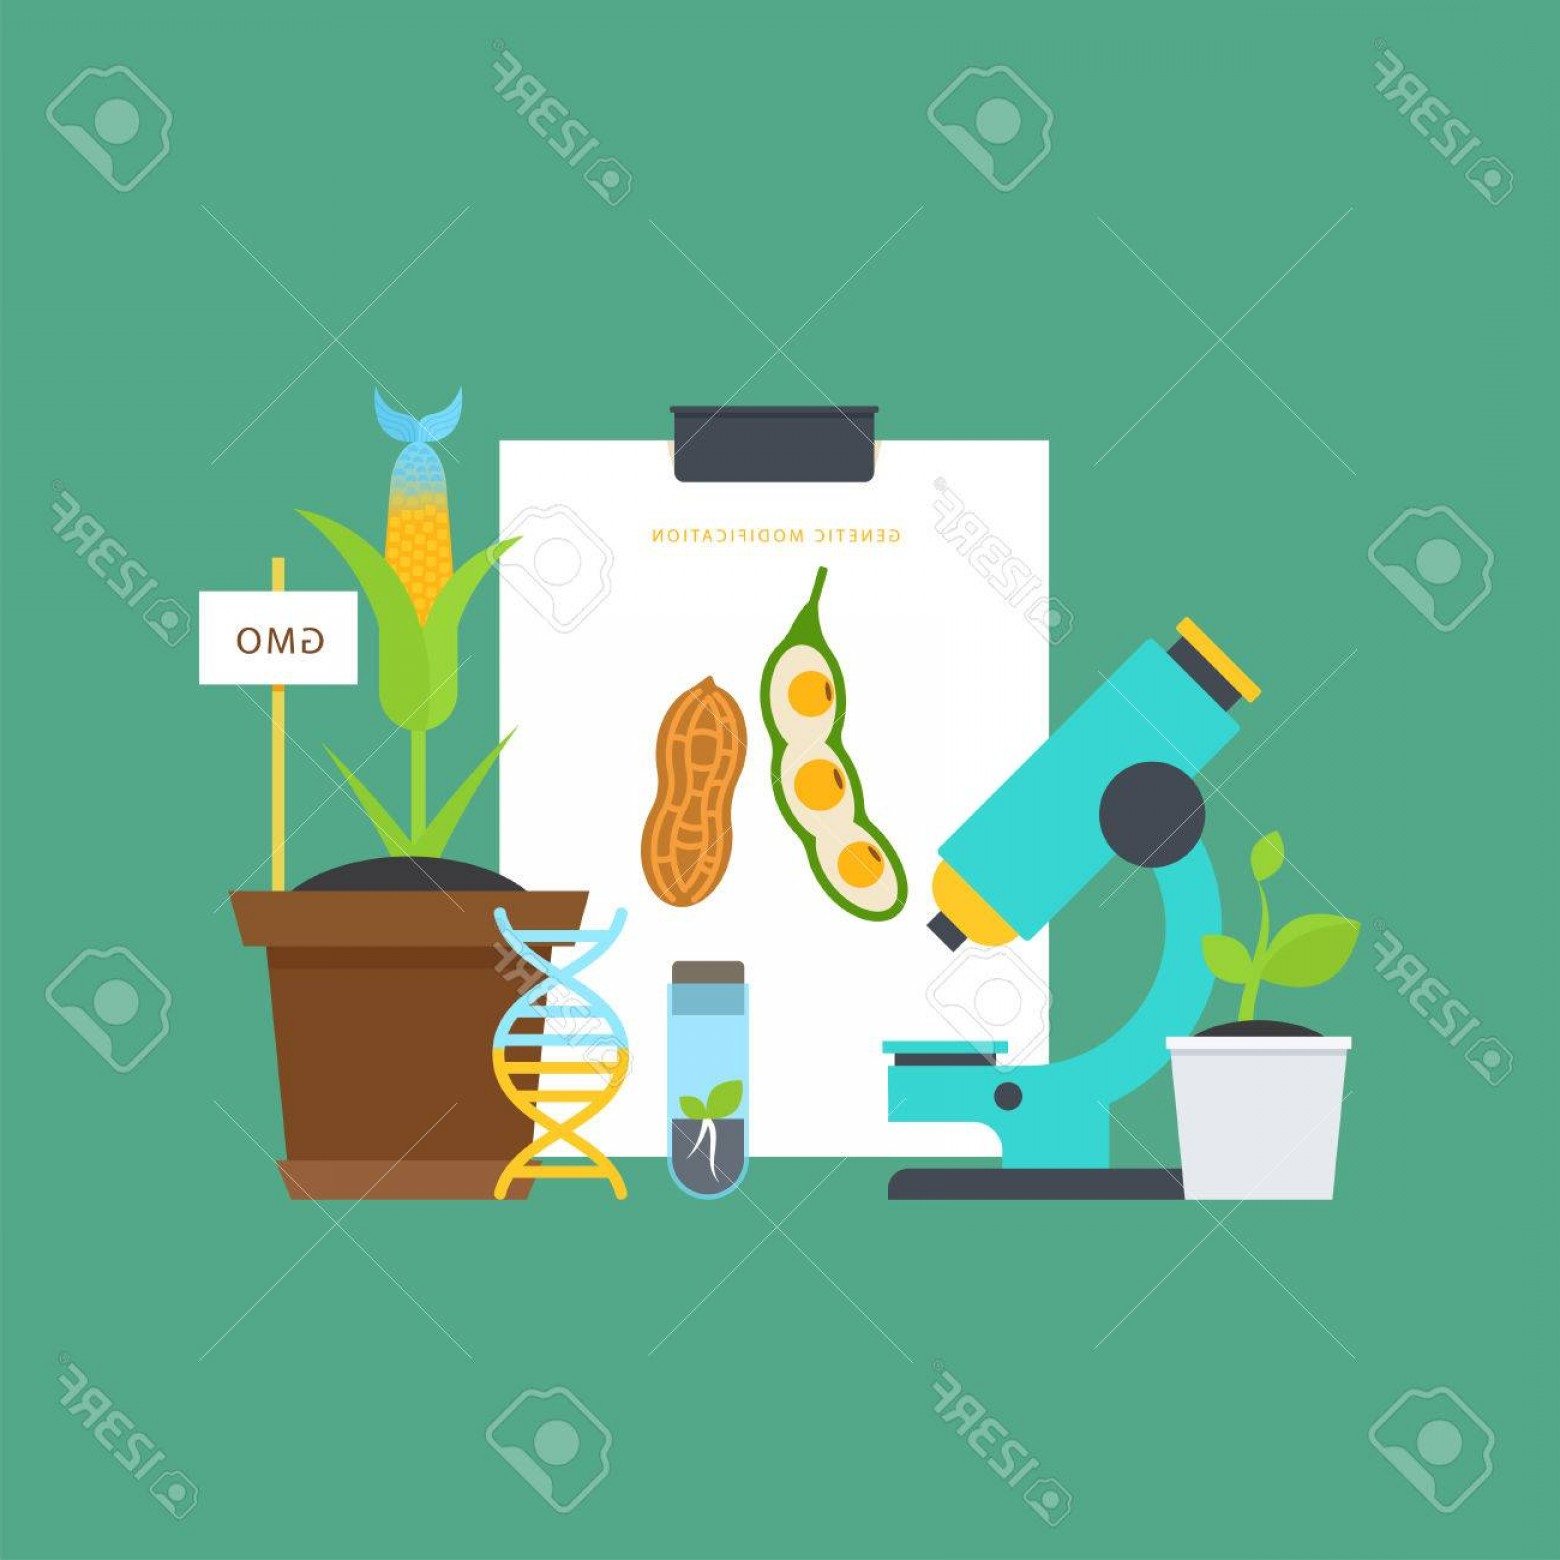 Genetic Engineering Animals Vector: Photostock Vector Genetic Engineering Simple Botanical Concept With Vials Seedlings Plants A Microscope A Dna Molecule